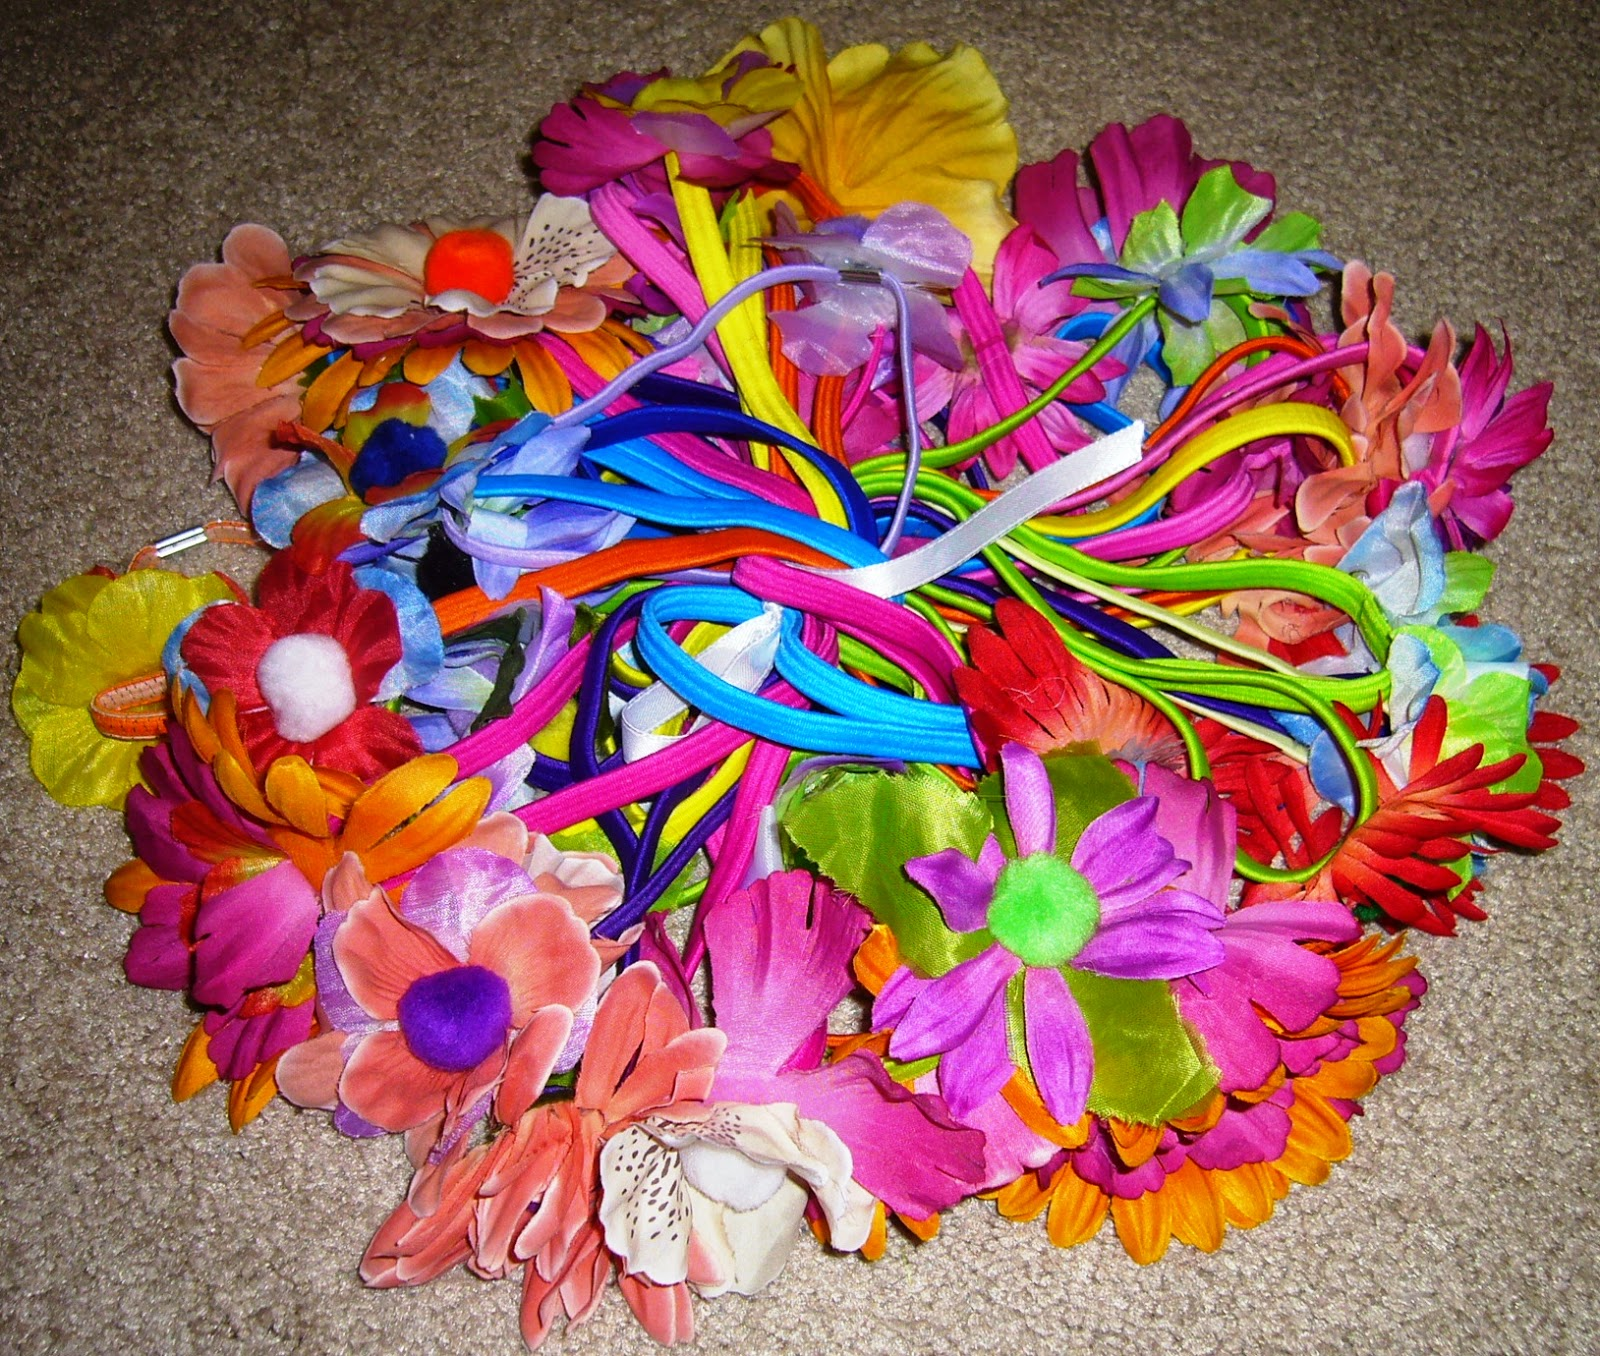 Pile of Posies headbands for shoe boxes